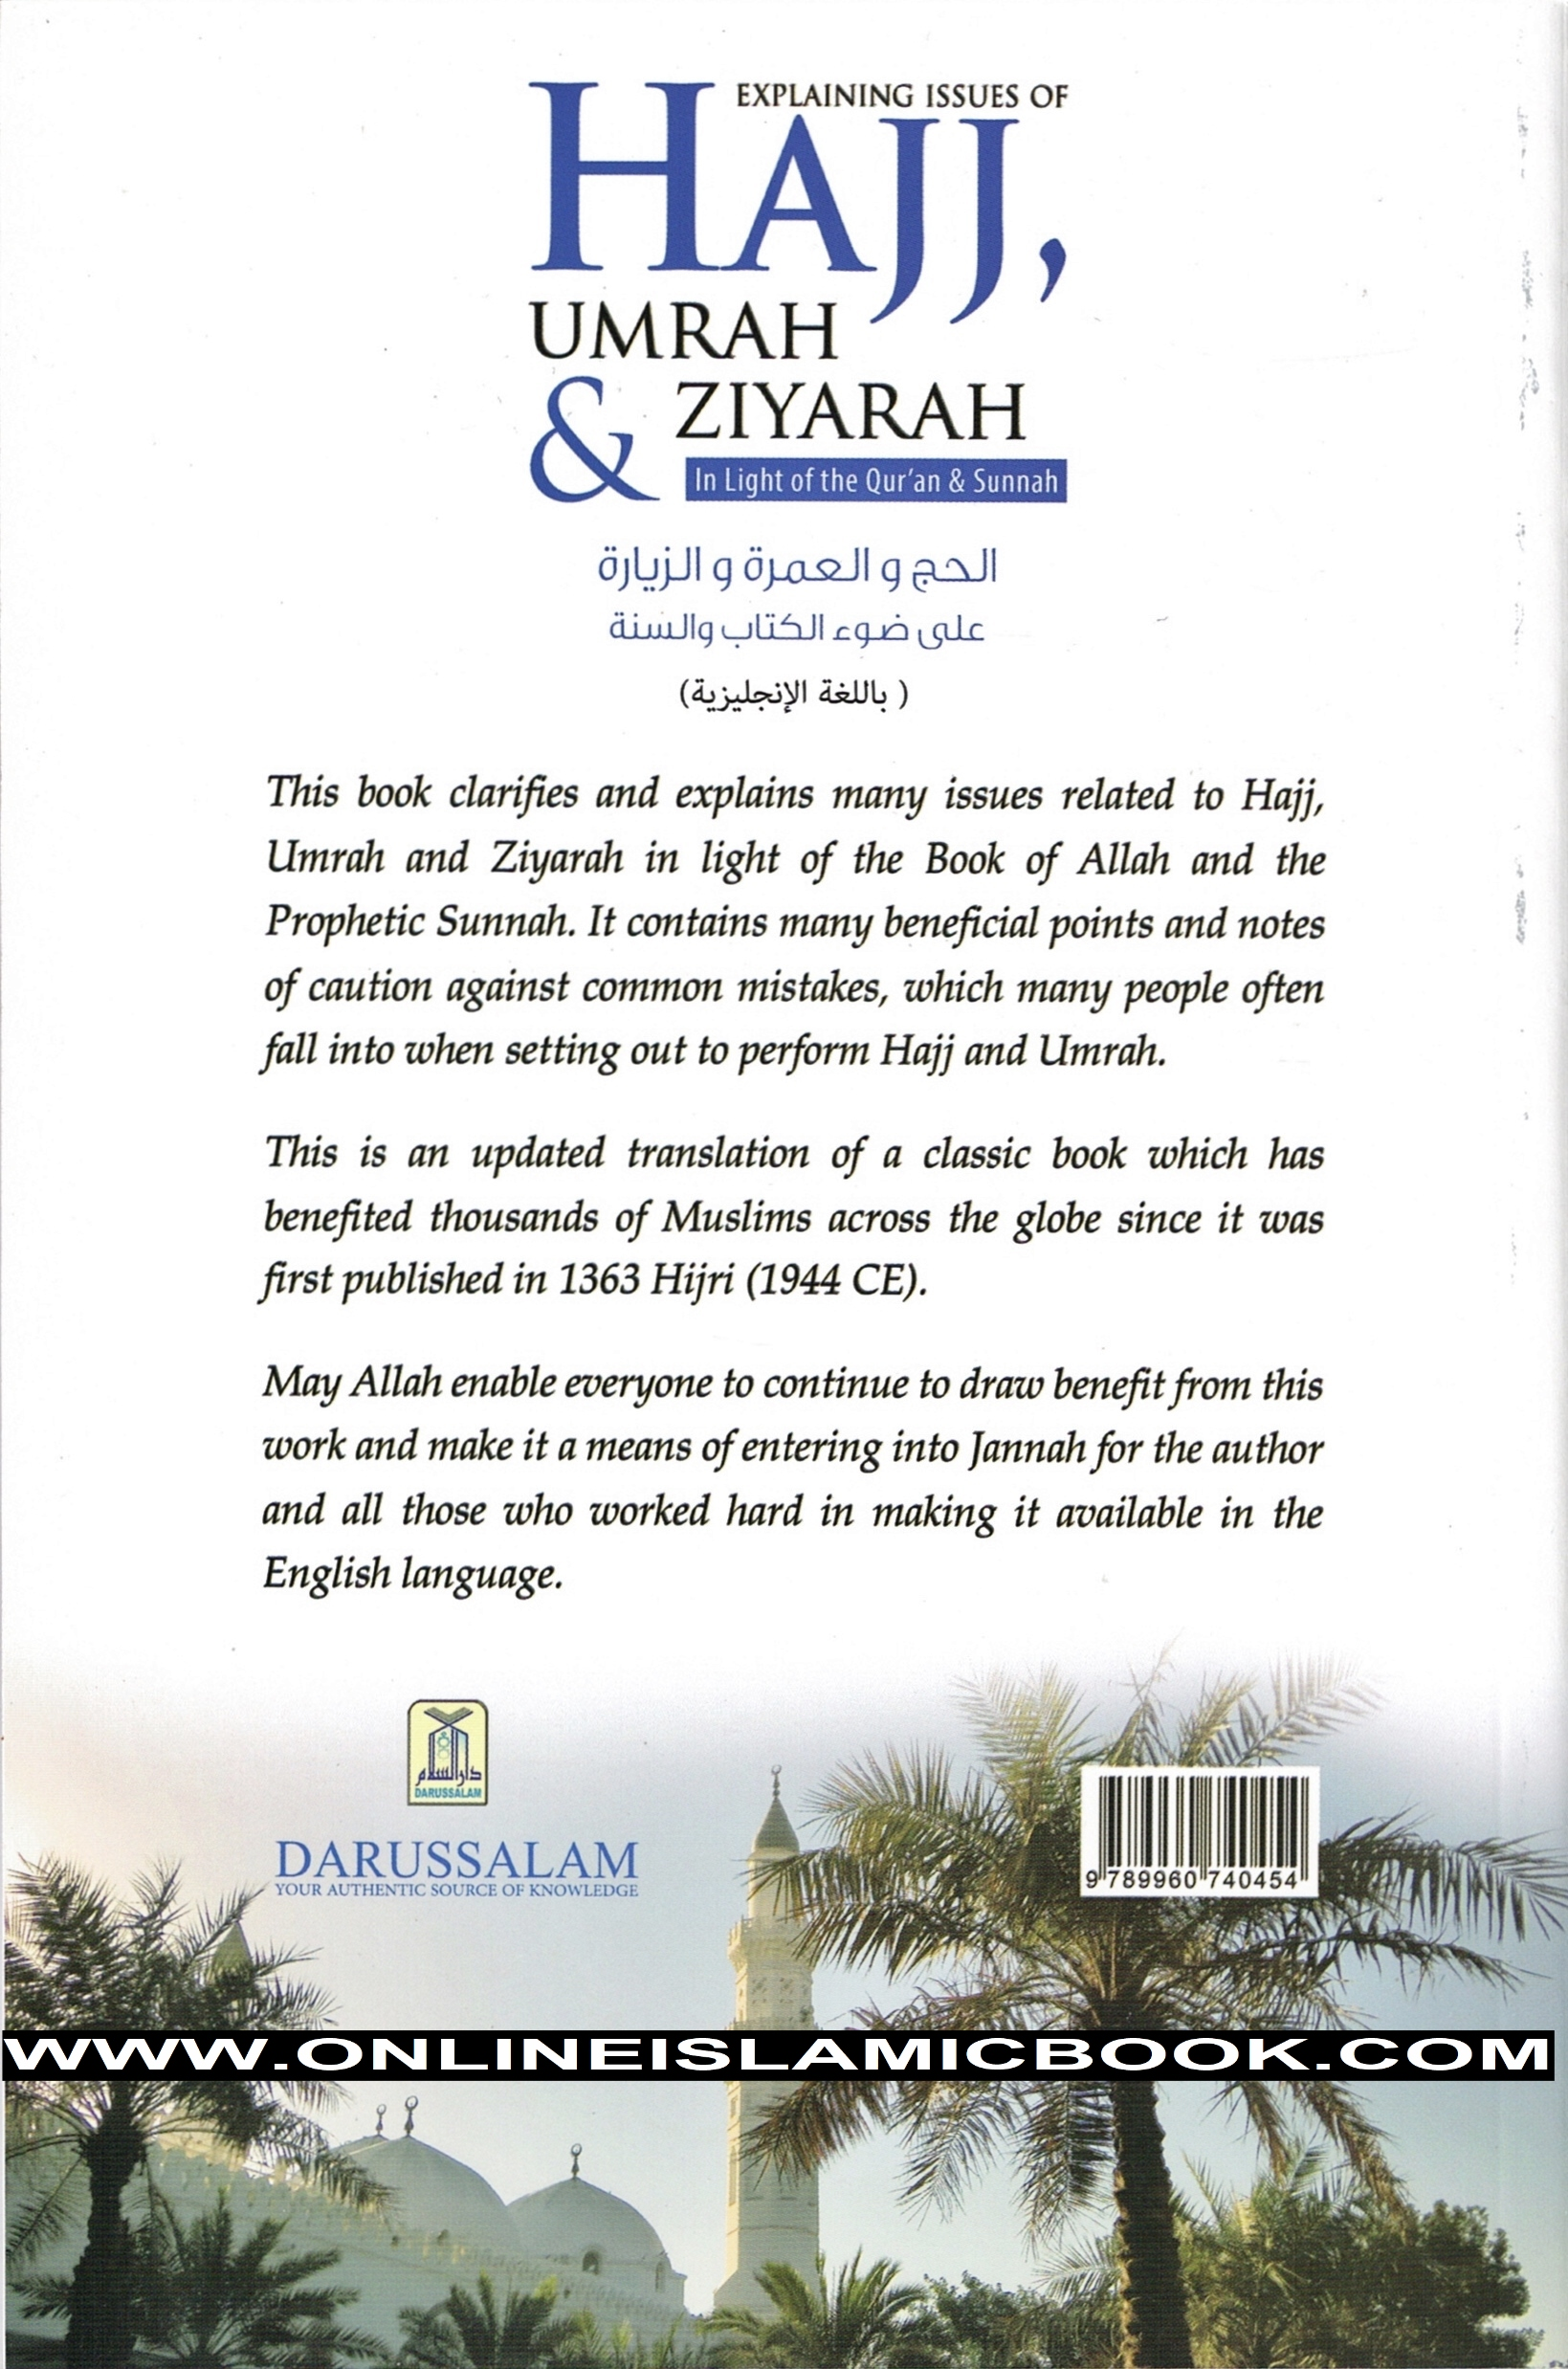 Explaining Issues of Hajj, Umrah & Ziyarah in Light of the Qur'an & Sunnah